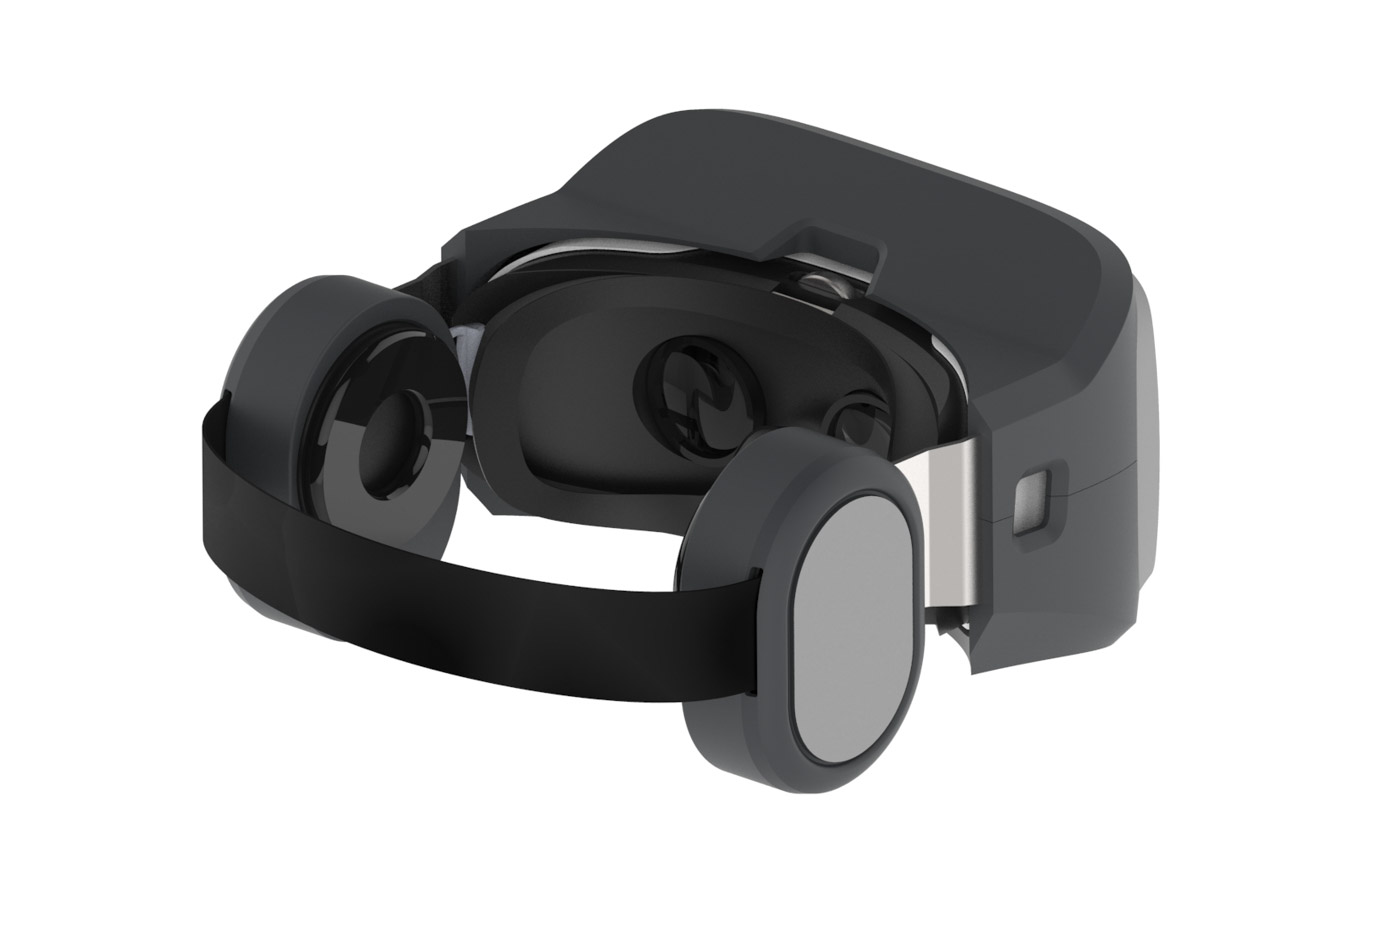 20151021-ensemble_vr headset c1.2120.jpg